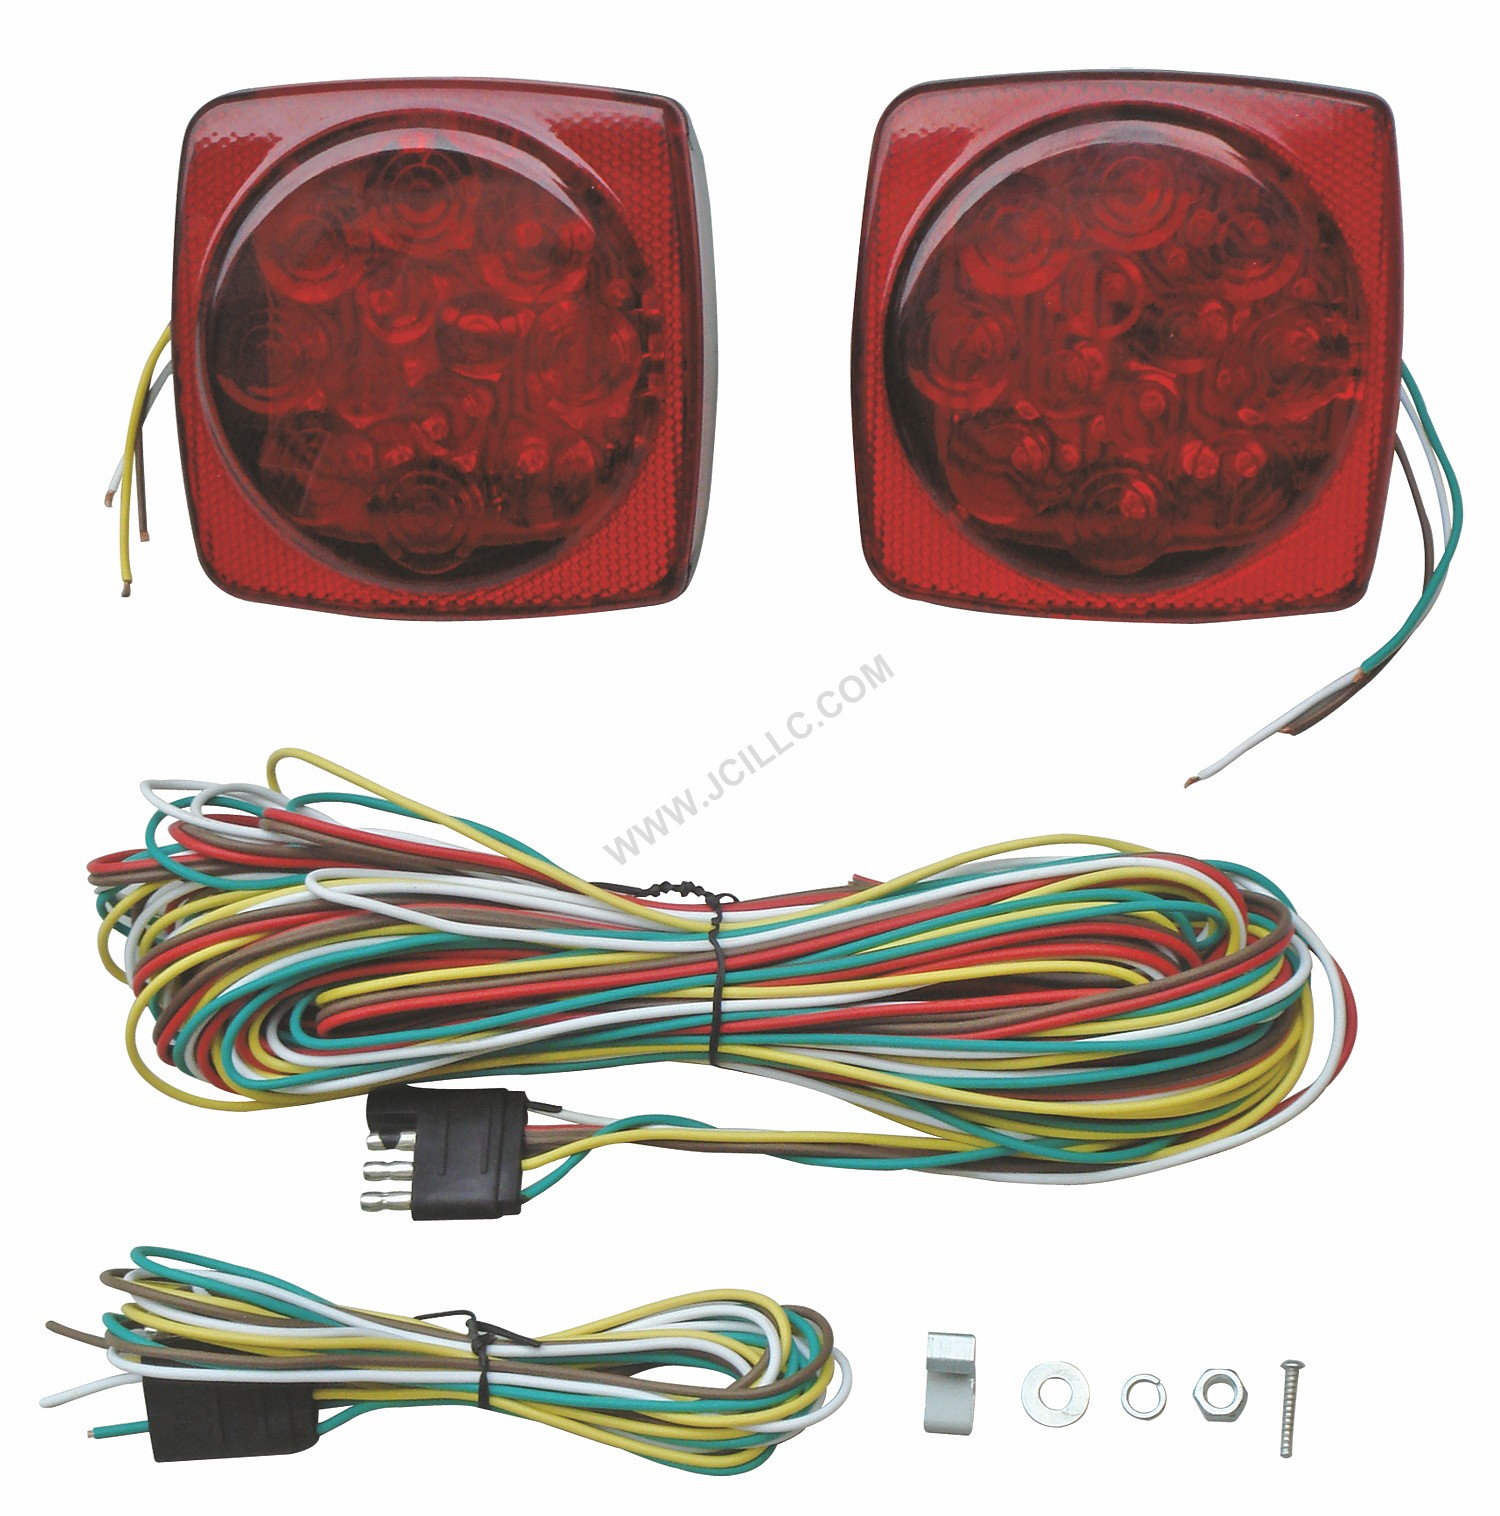 Trailer Lighting Kit Trailer Towing Lights Lighting Wiring